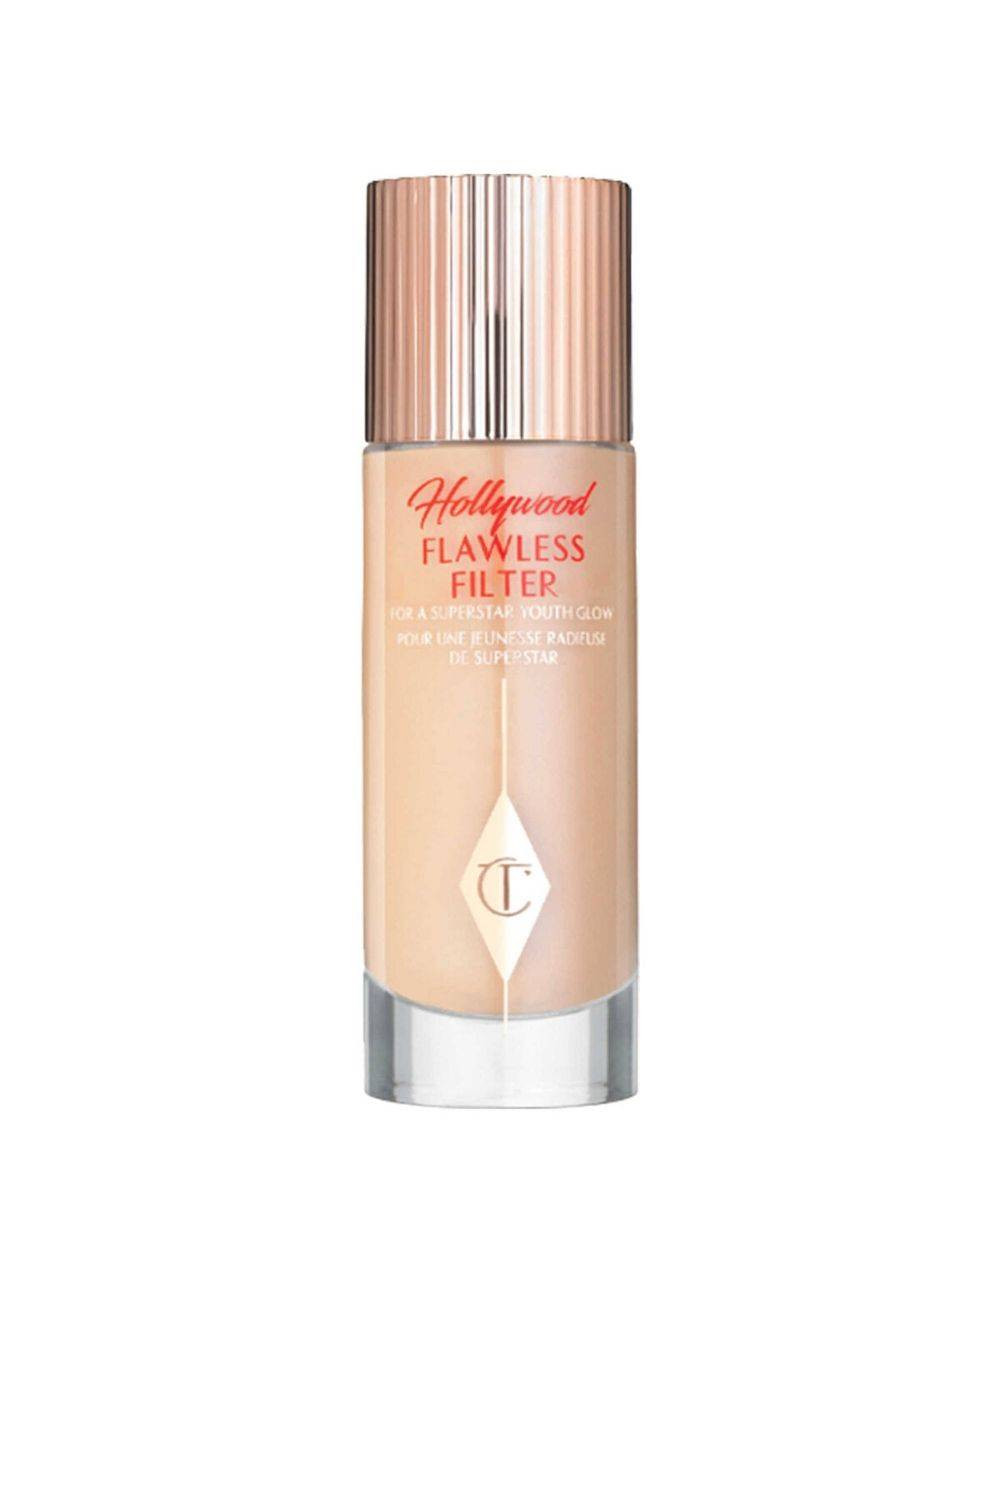 Hollywood Flawless Filter Filtro Perfeccionador de Charlotte Tilbury